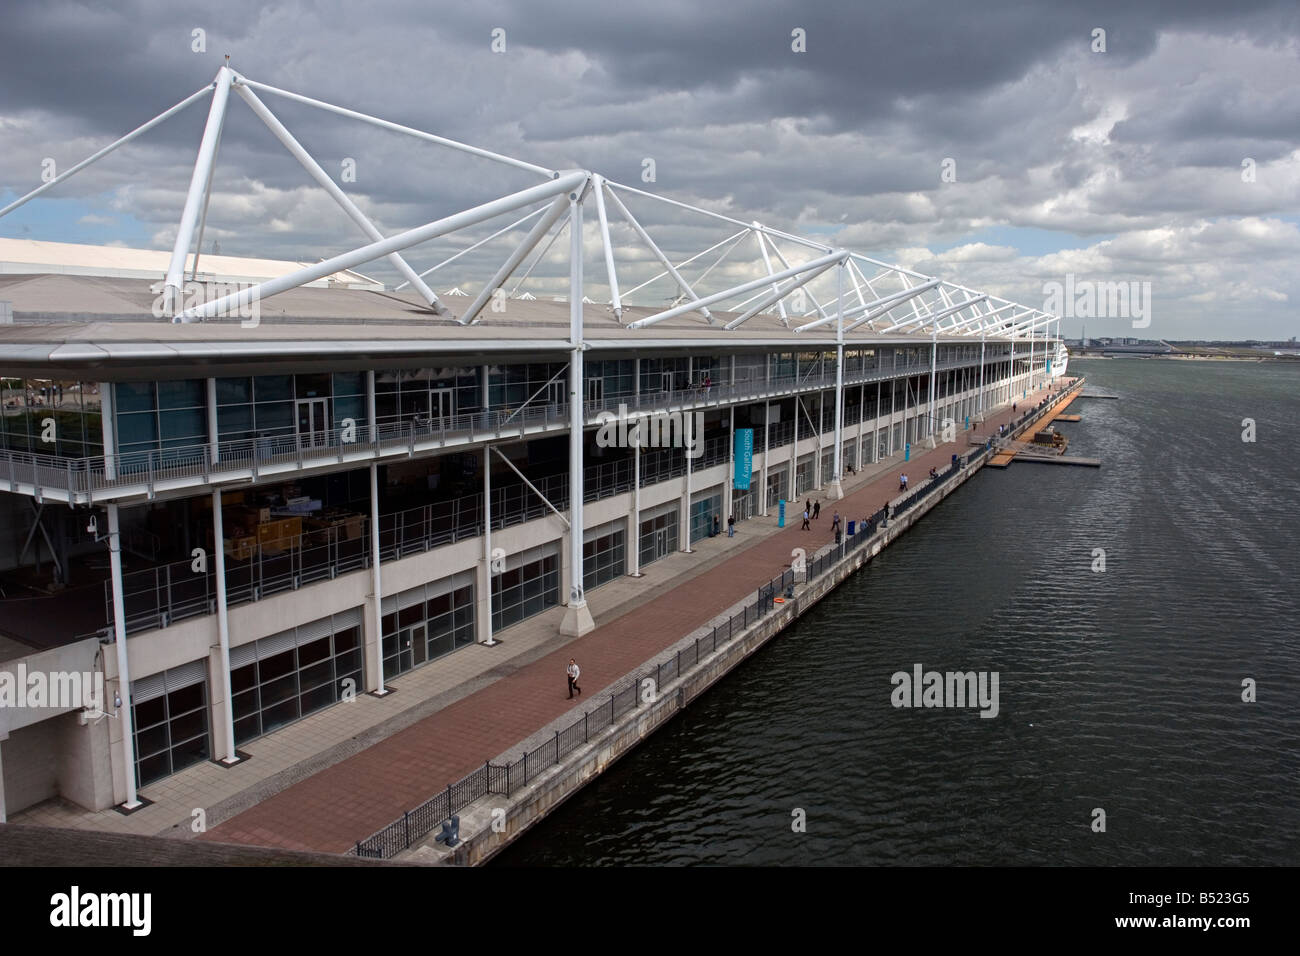 the Excel Exhibition Centre at Royal Victoria Dock London UK - Stock Image